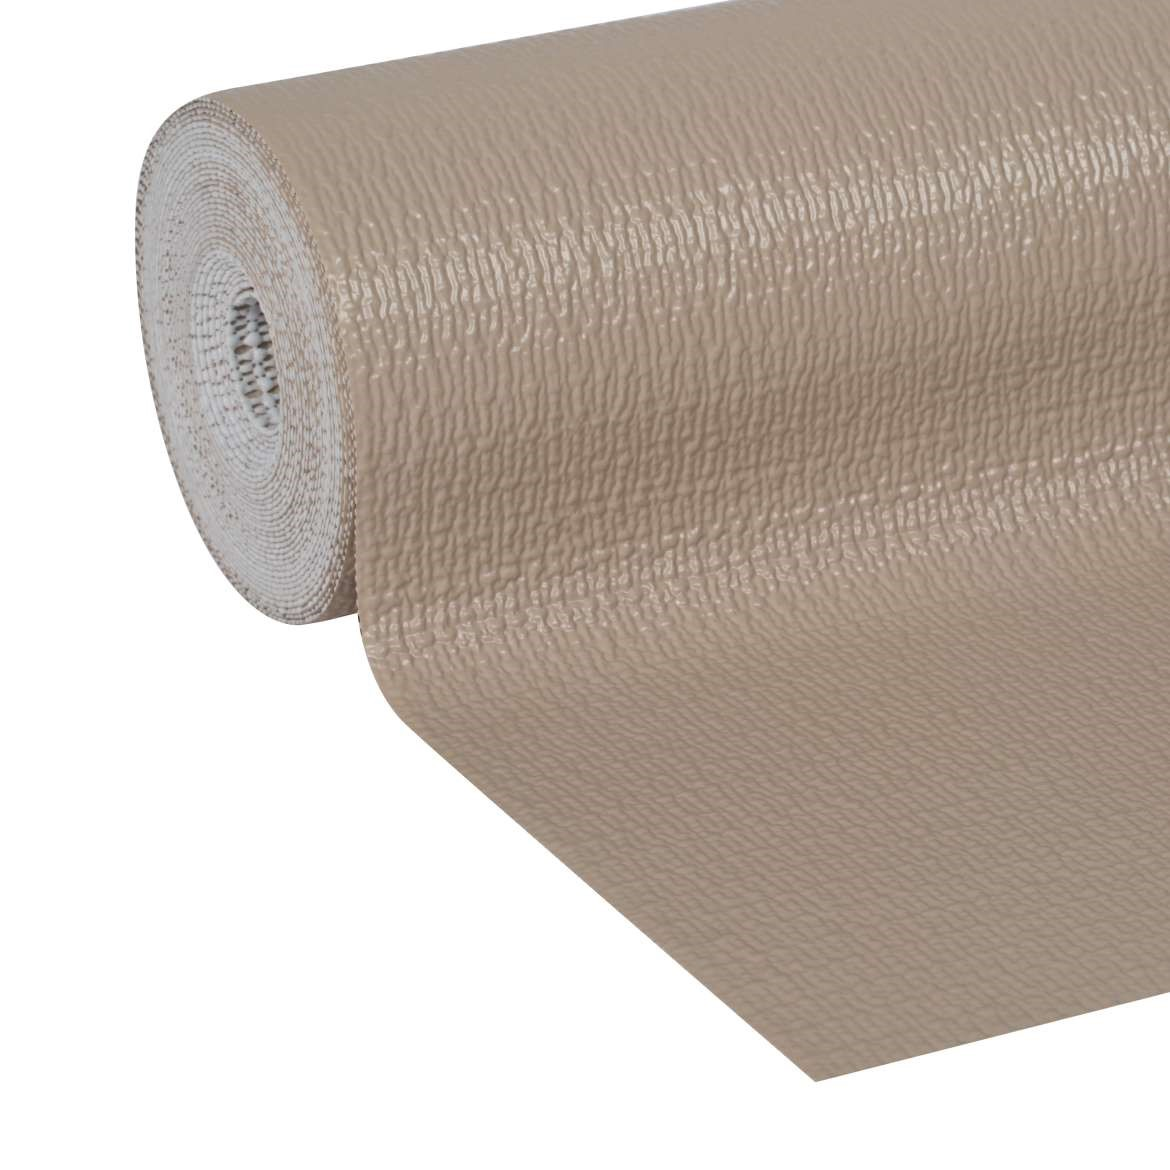 Duck Easy Liner Brand Shelf Liner Smooth Top, Taupe, 12 In x 20 Ft